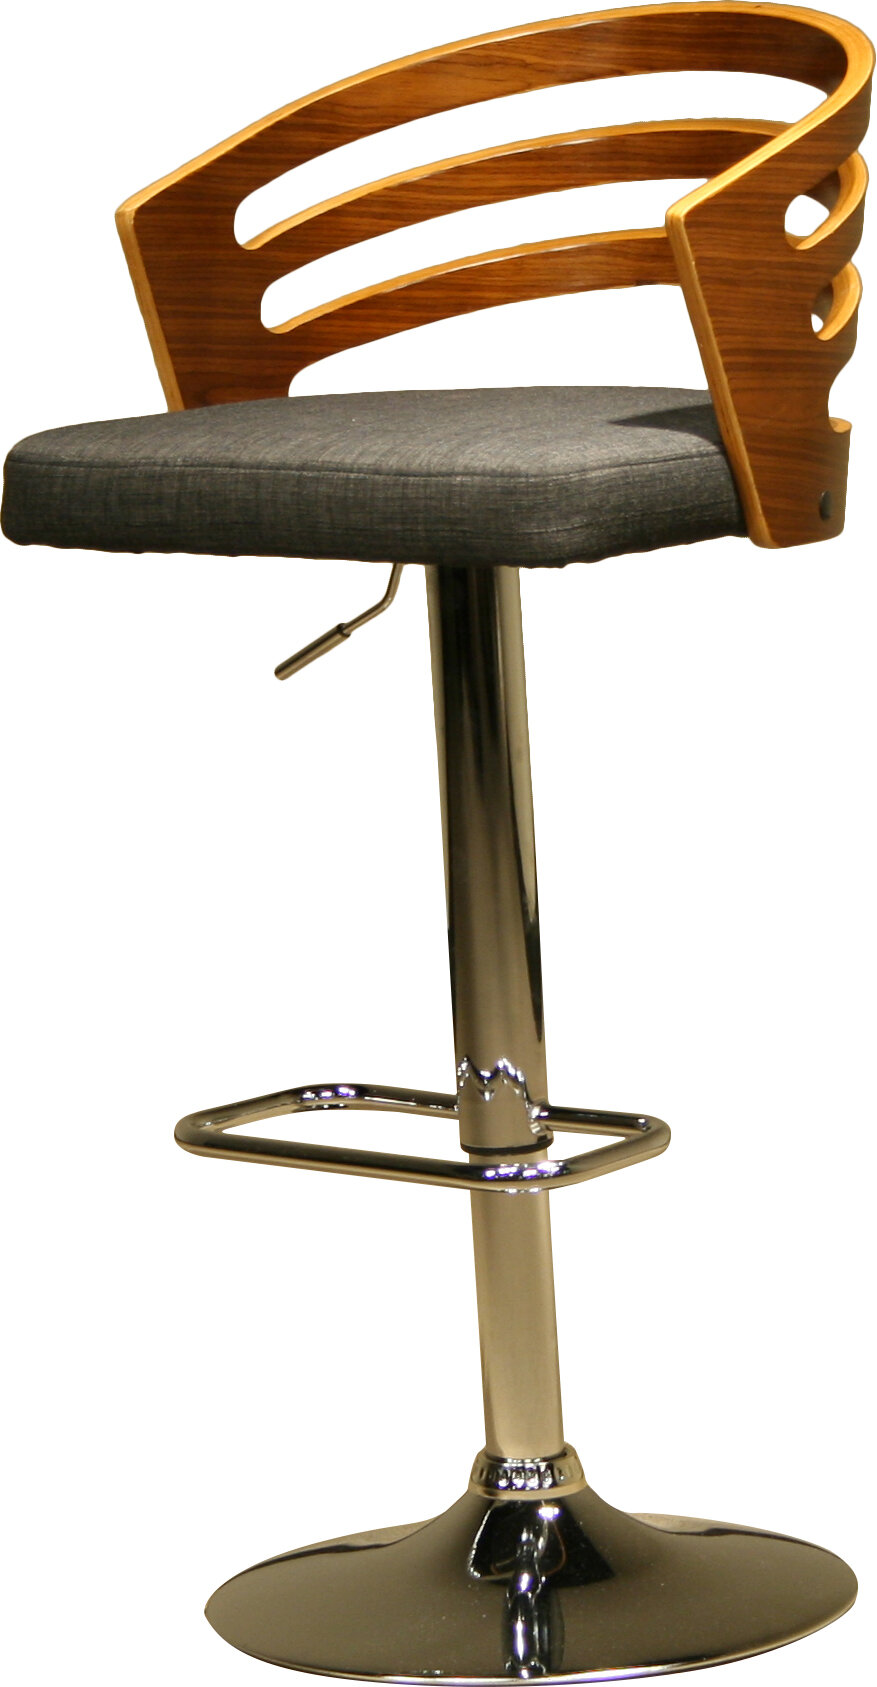 Ac Pacific Modern Wood Adjule Height Swivel Bar Stool Reviews Wayfair